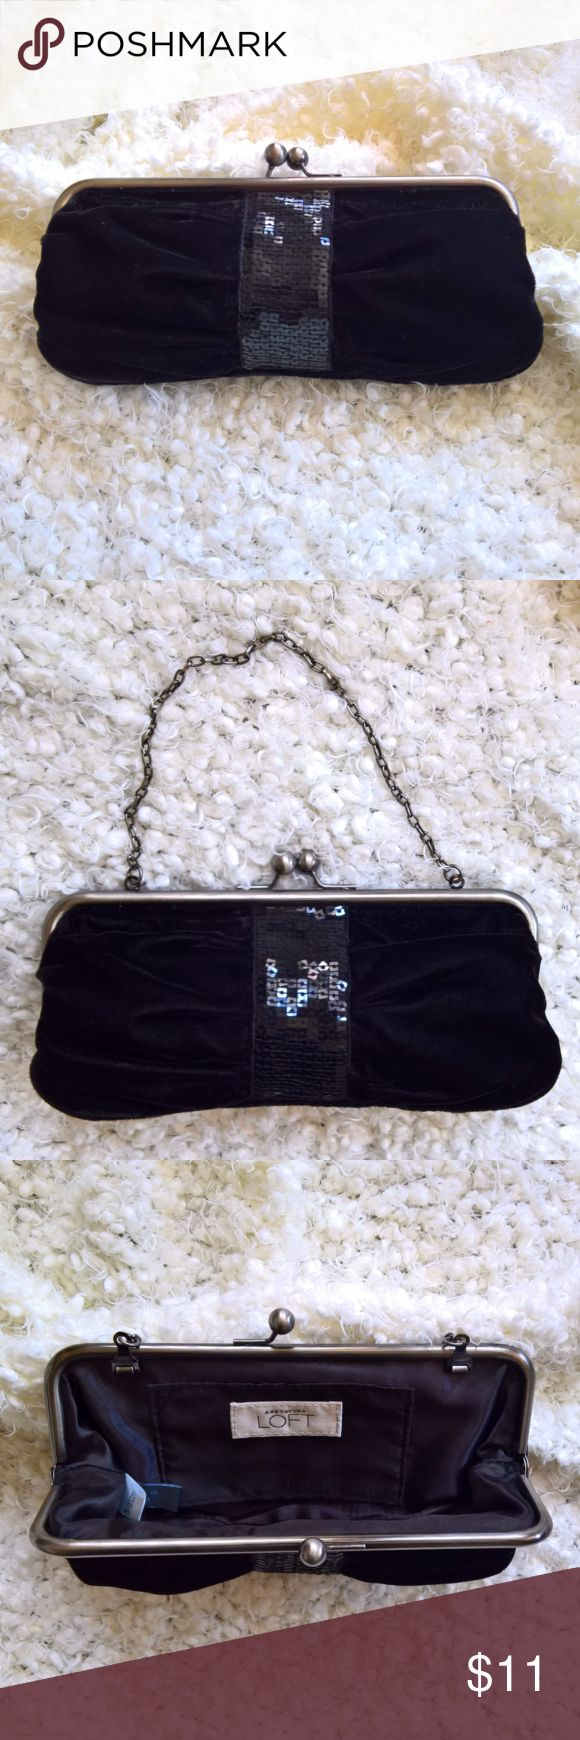 """Anne Taylor LOFT Velvet Clutch with Sequins Anne Taylor LOFT black velvet clutch. Sequin accent. Metal frame and clasp. 5"""" drop on chain. 8""""x4"""". Anne Taylor LOFT Bags Clutches & Wristlets"""